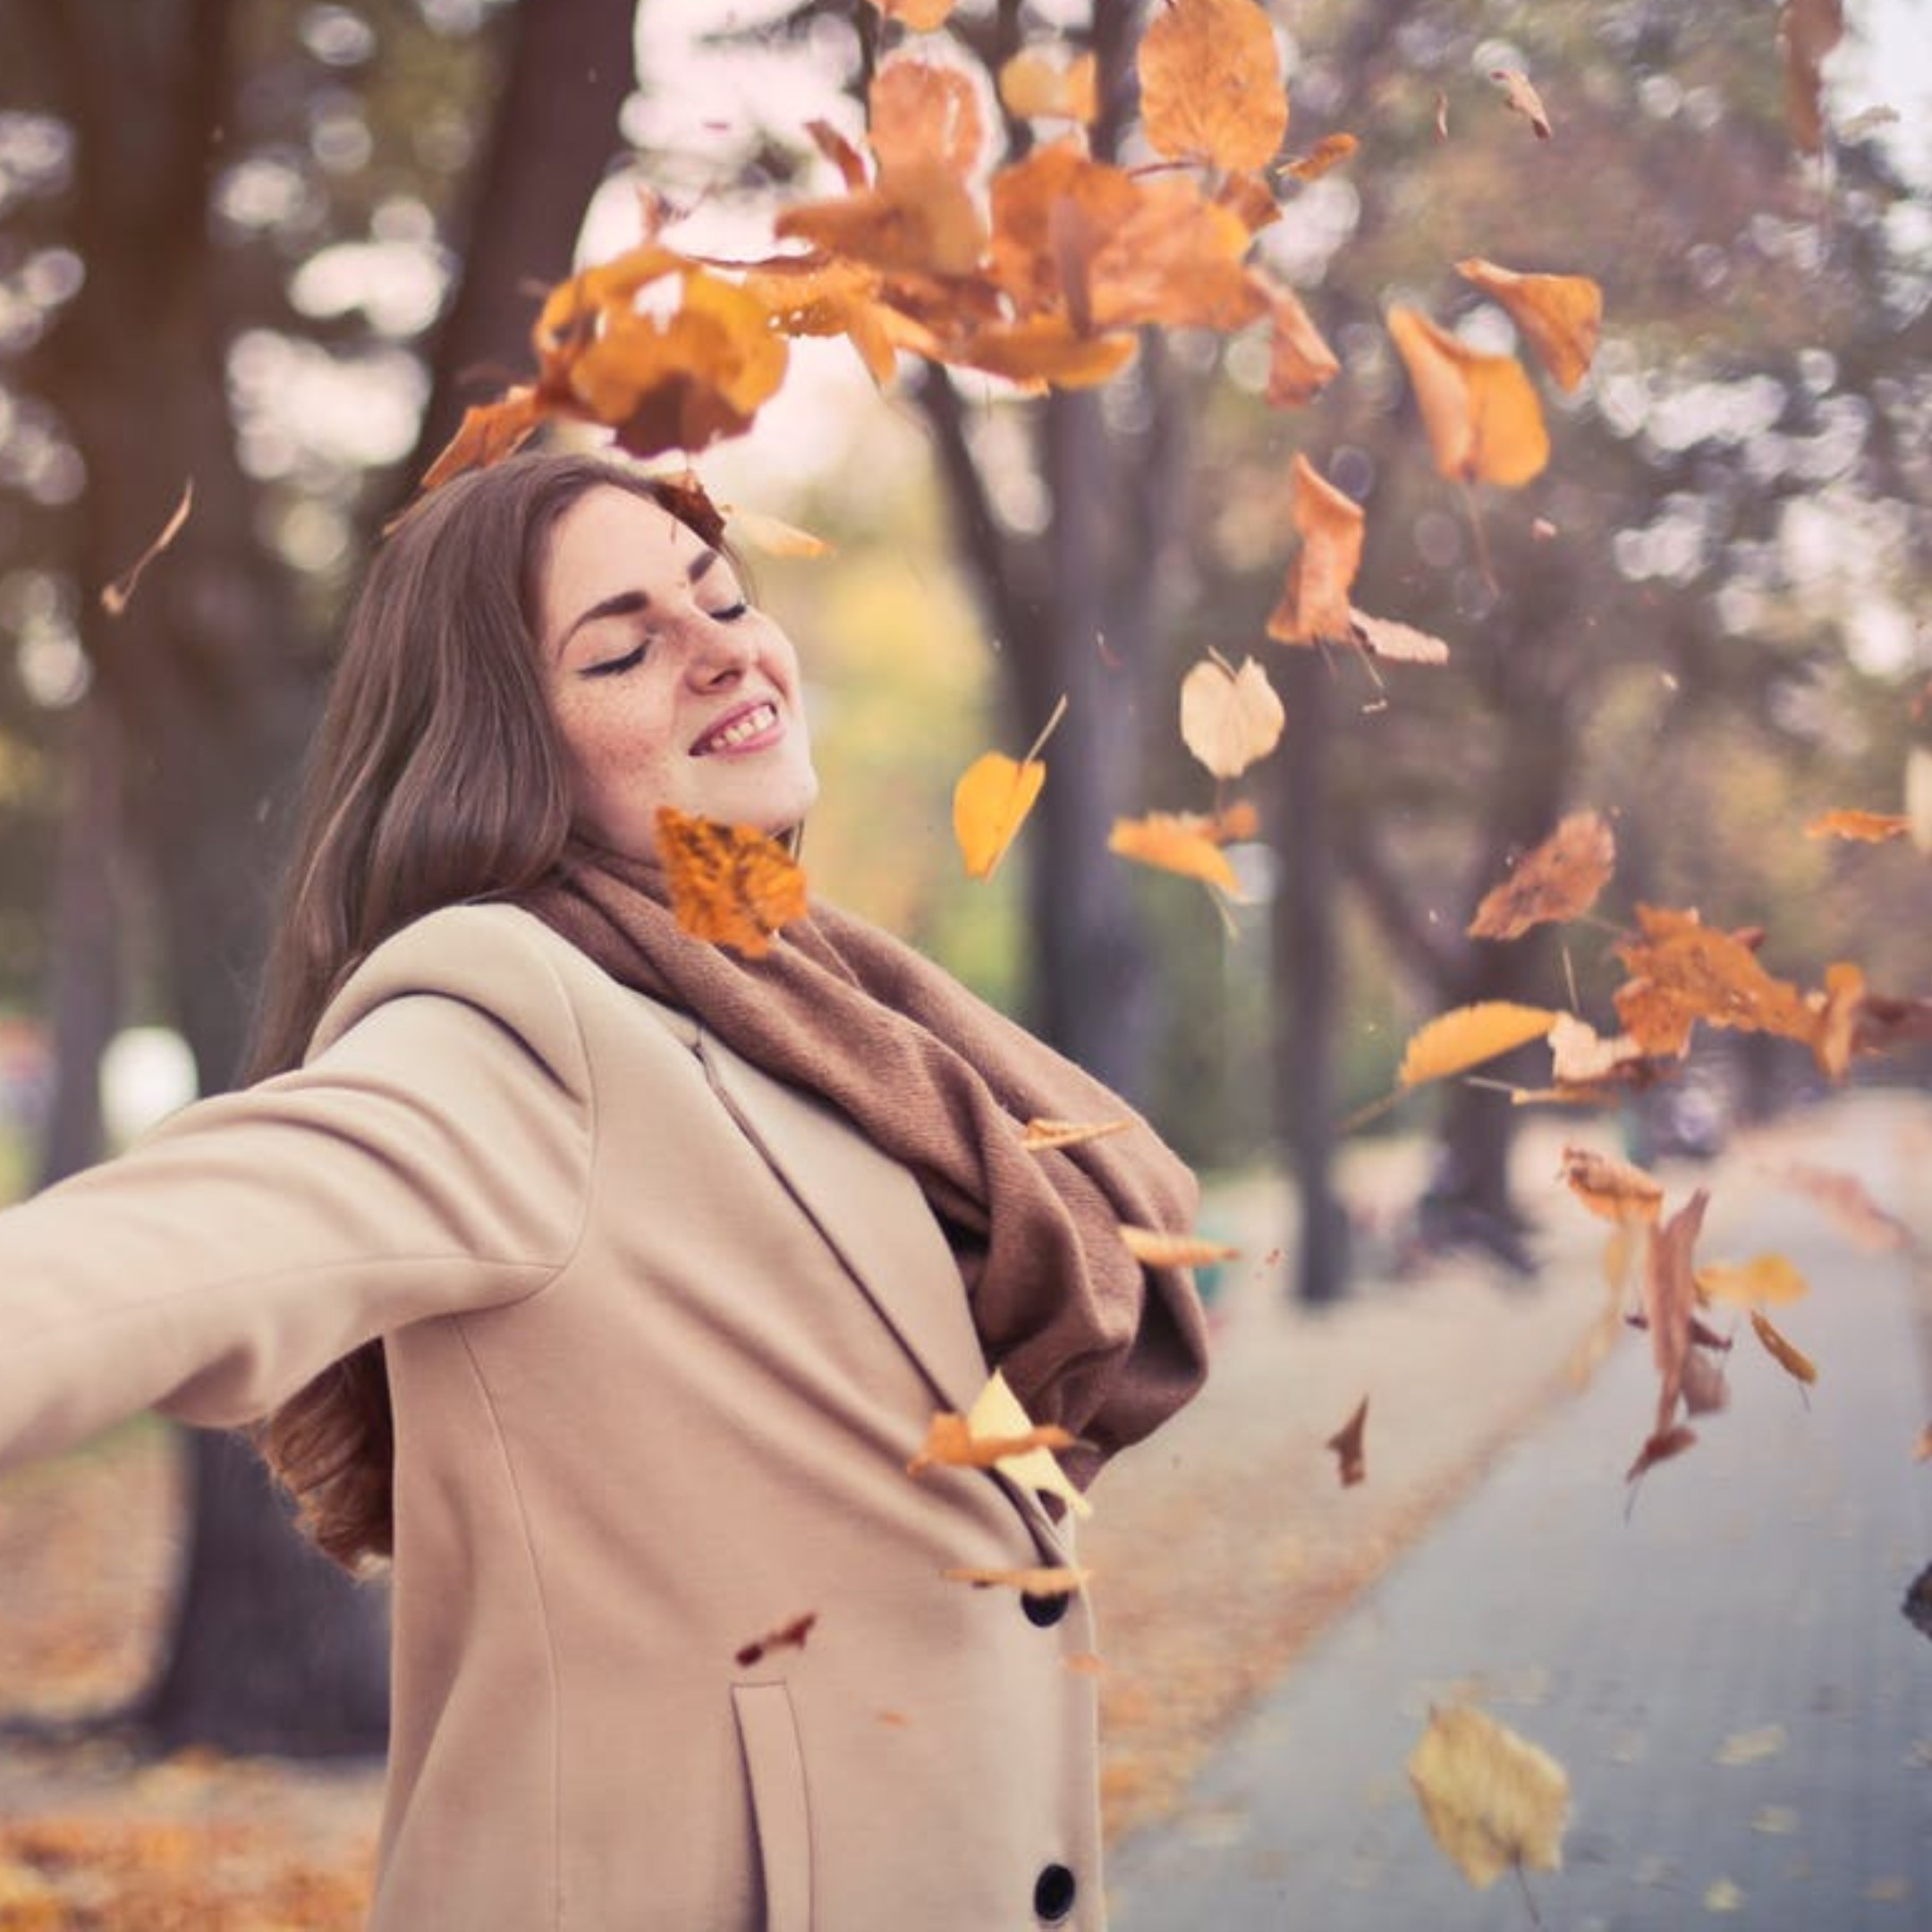 Woman-smiling-as-fall-leaves-fall-on-her.jpg